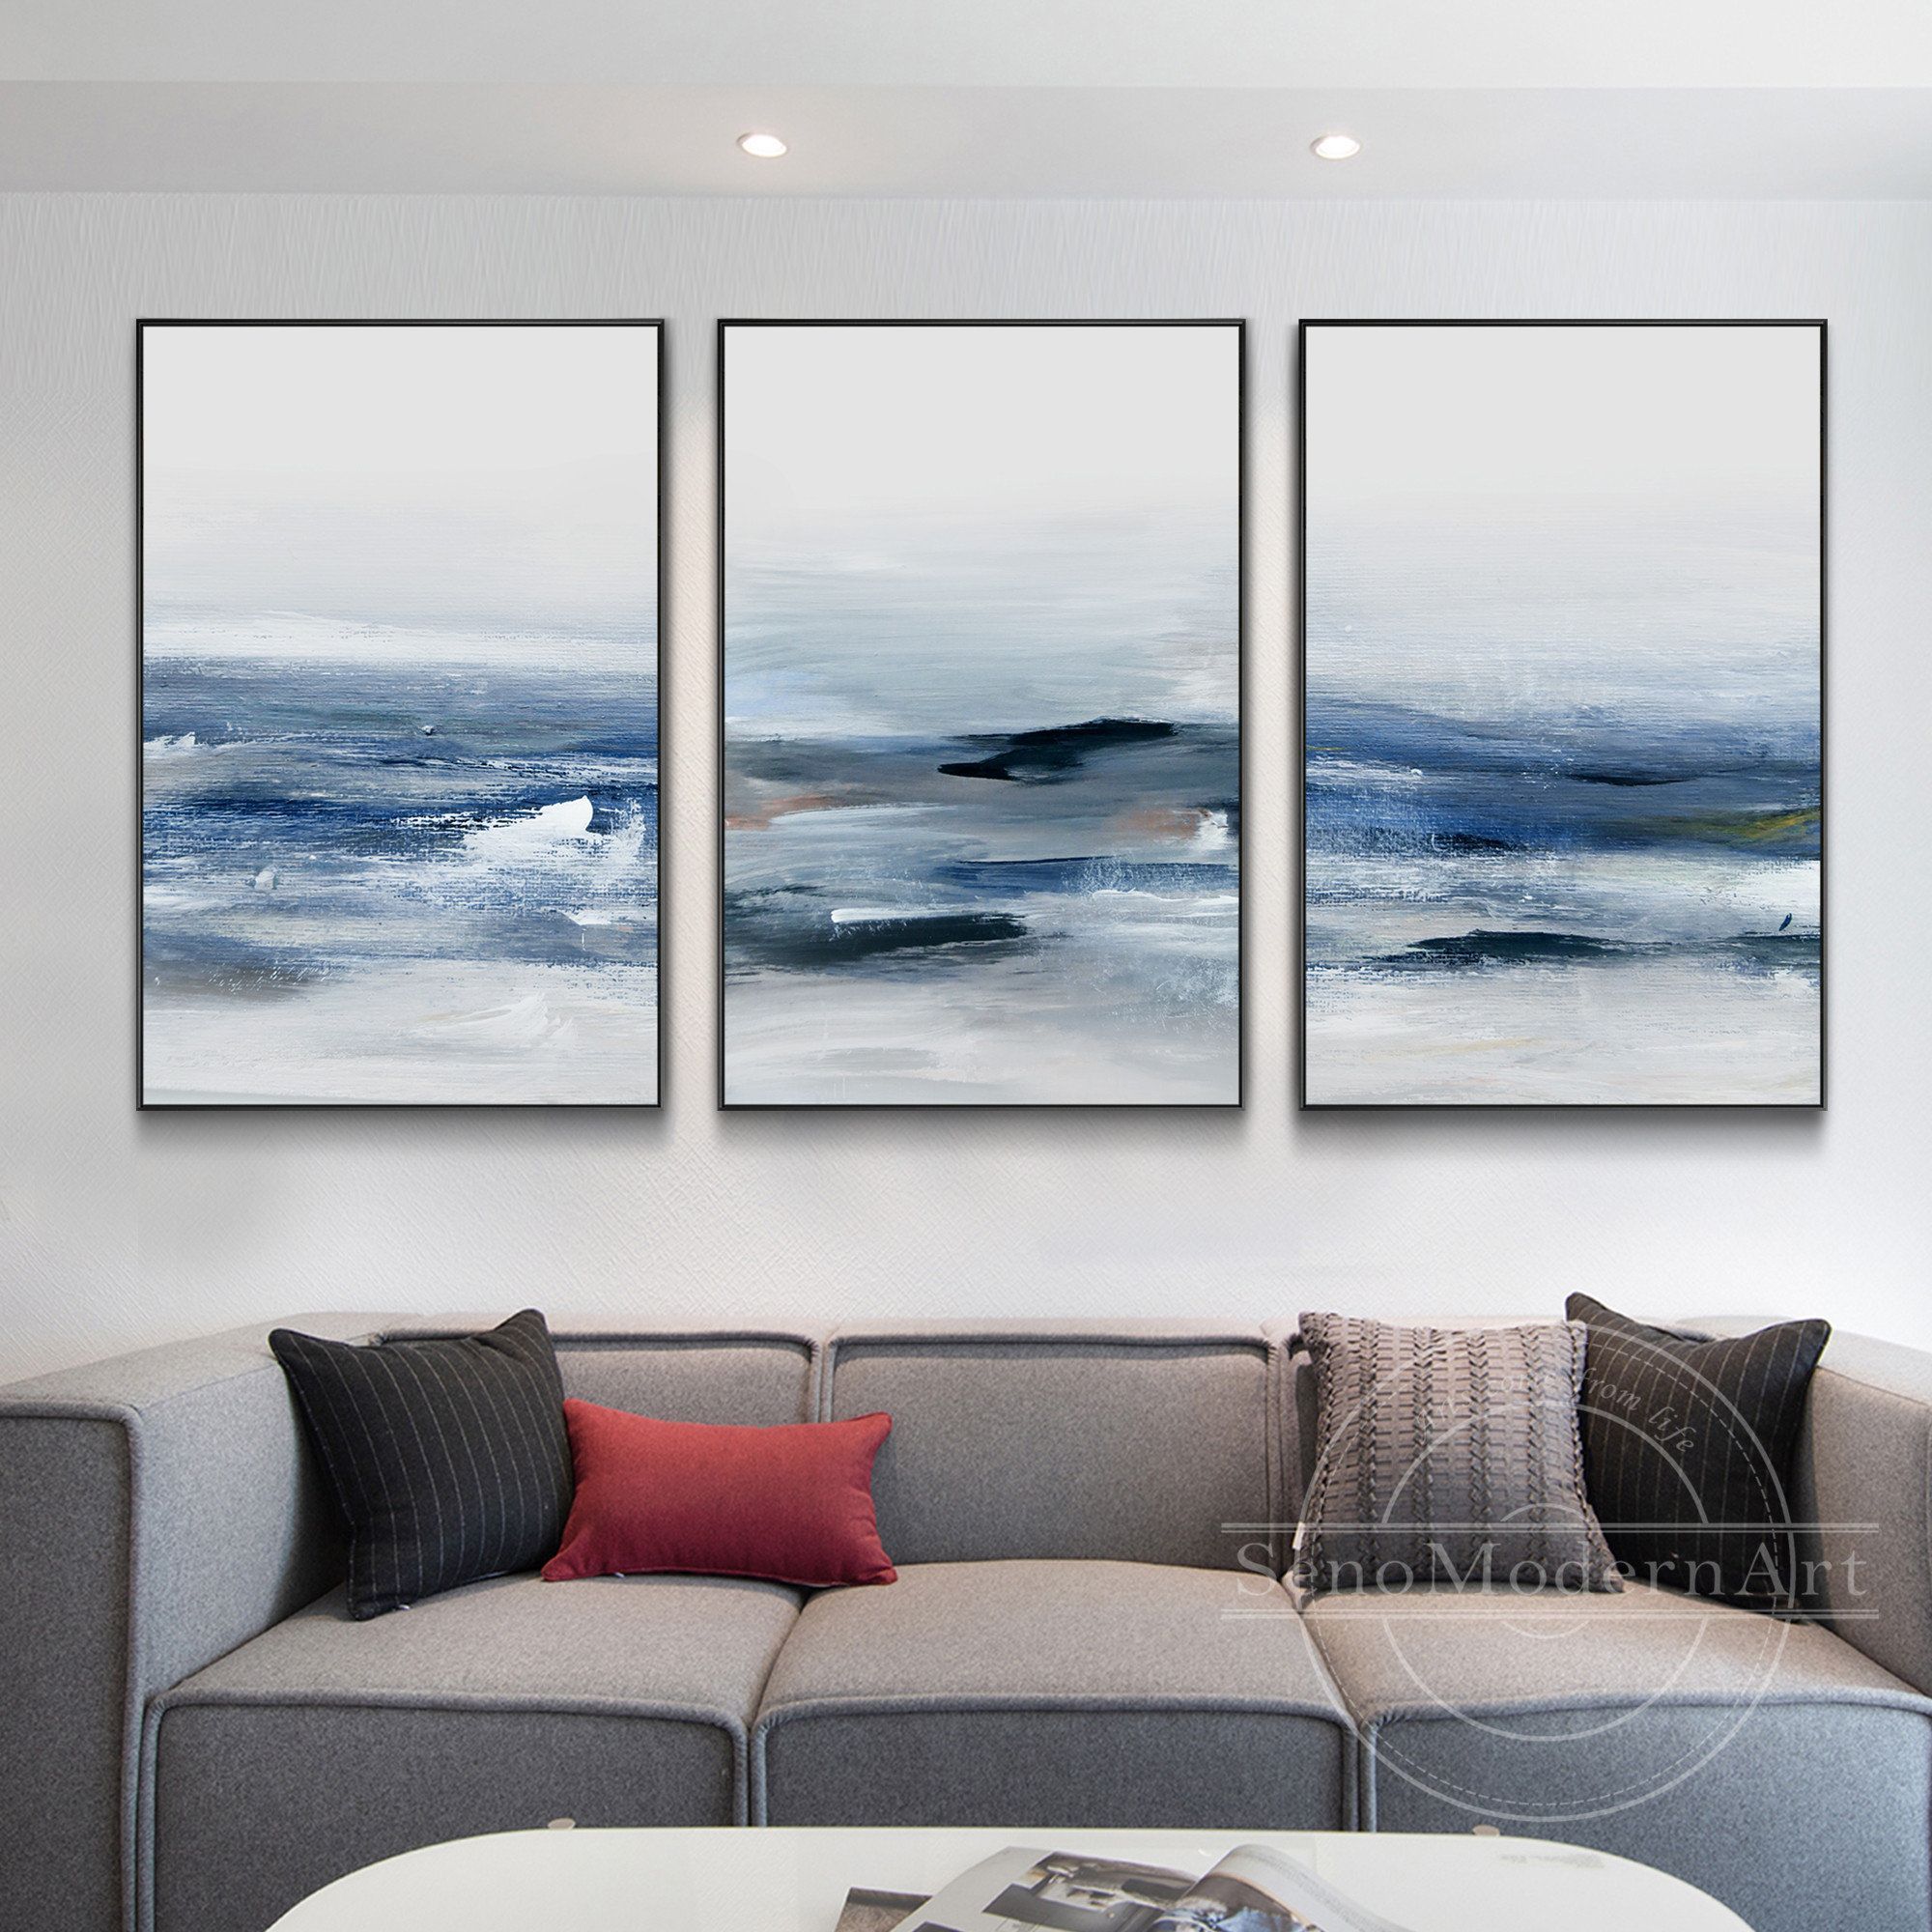 Set Of 3 Frame Wall Art Abstract Navy Blue White Seascape Etsy In 2021 Frames On Wall Framed Wall Art Sets Framed Wall Art